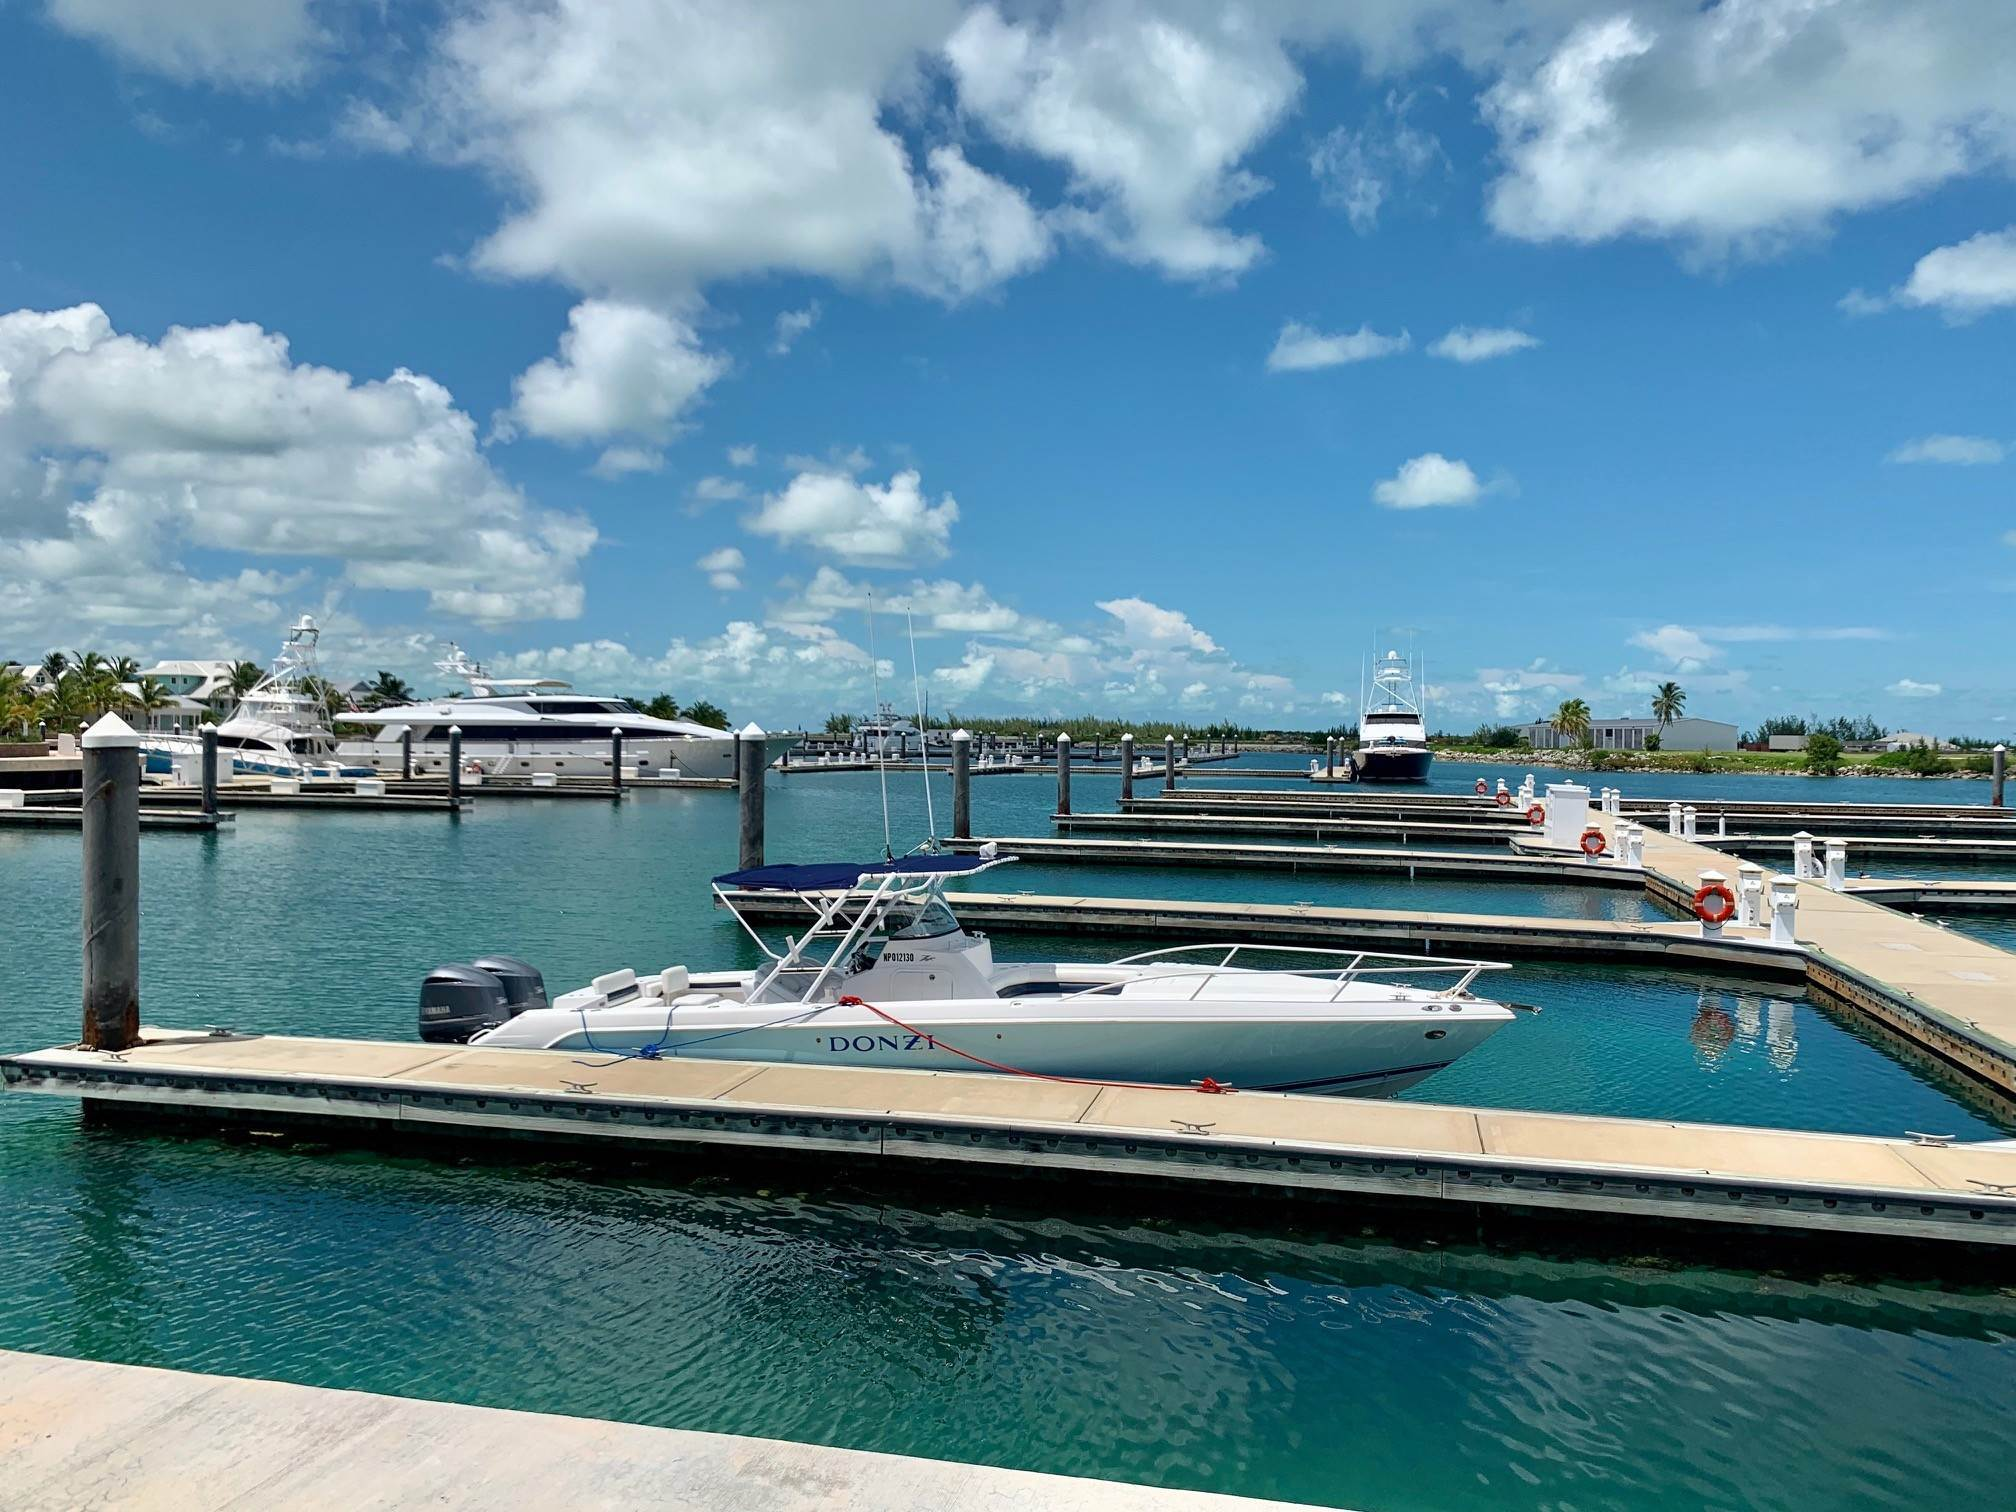 4. Otro por un Venta en Dock Slip #322 Chub Cay Marina, The Berry Islands - MLS 38791 Chub Cay, Islas Berry, Bahamas